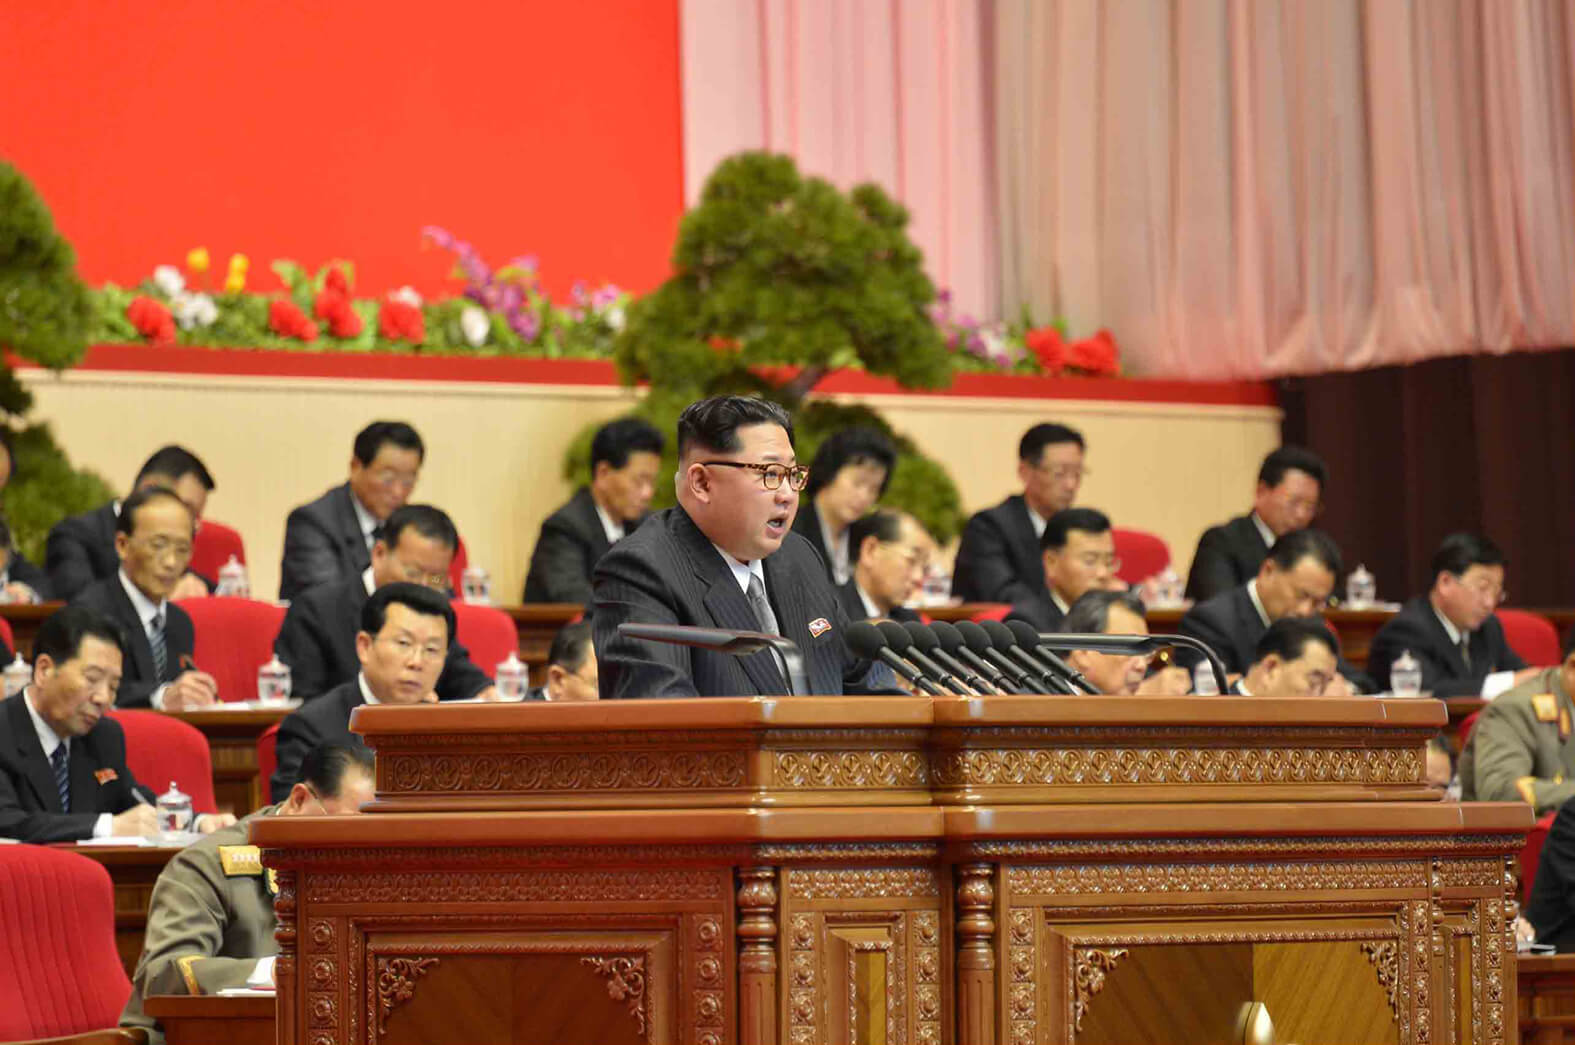 Kim Jong Un presiding over the Seventh Congress of the Workers' Party of Korea in May 2016